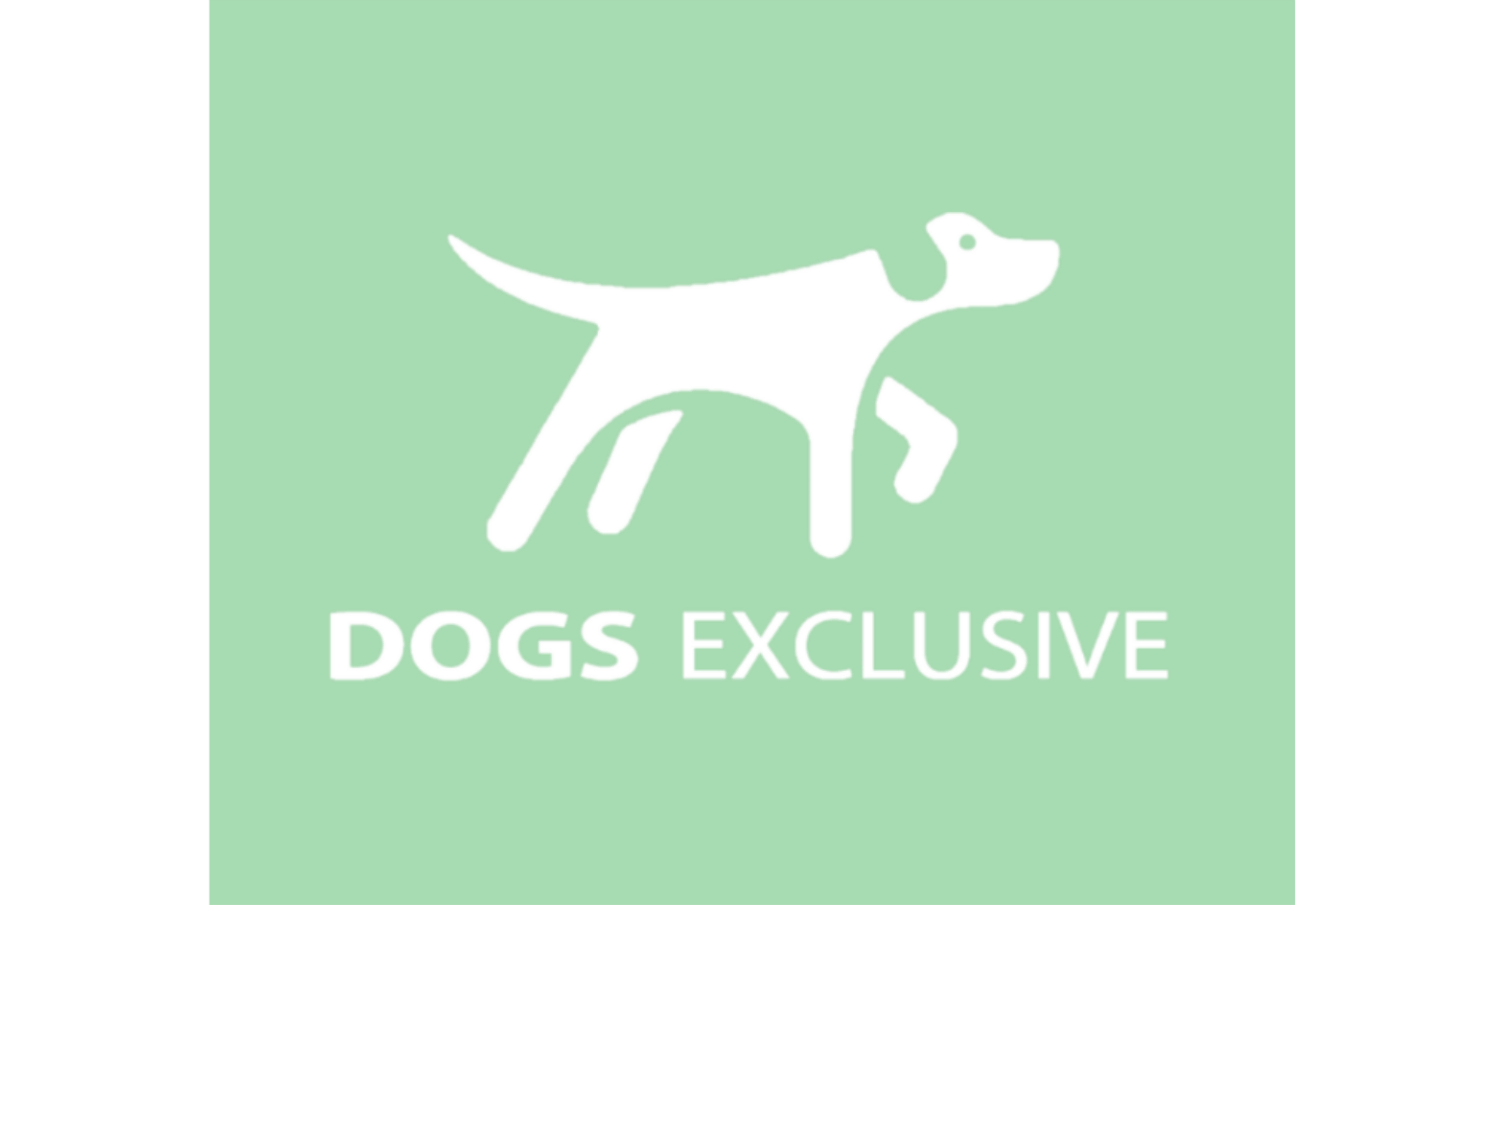 Dogs Exclusive